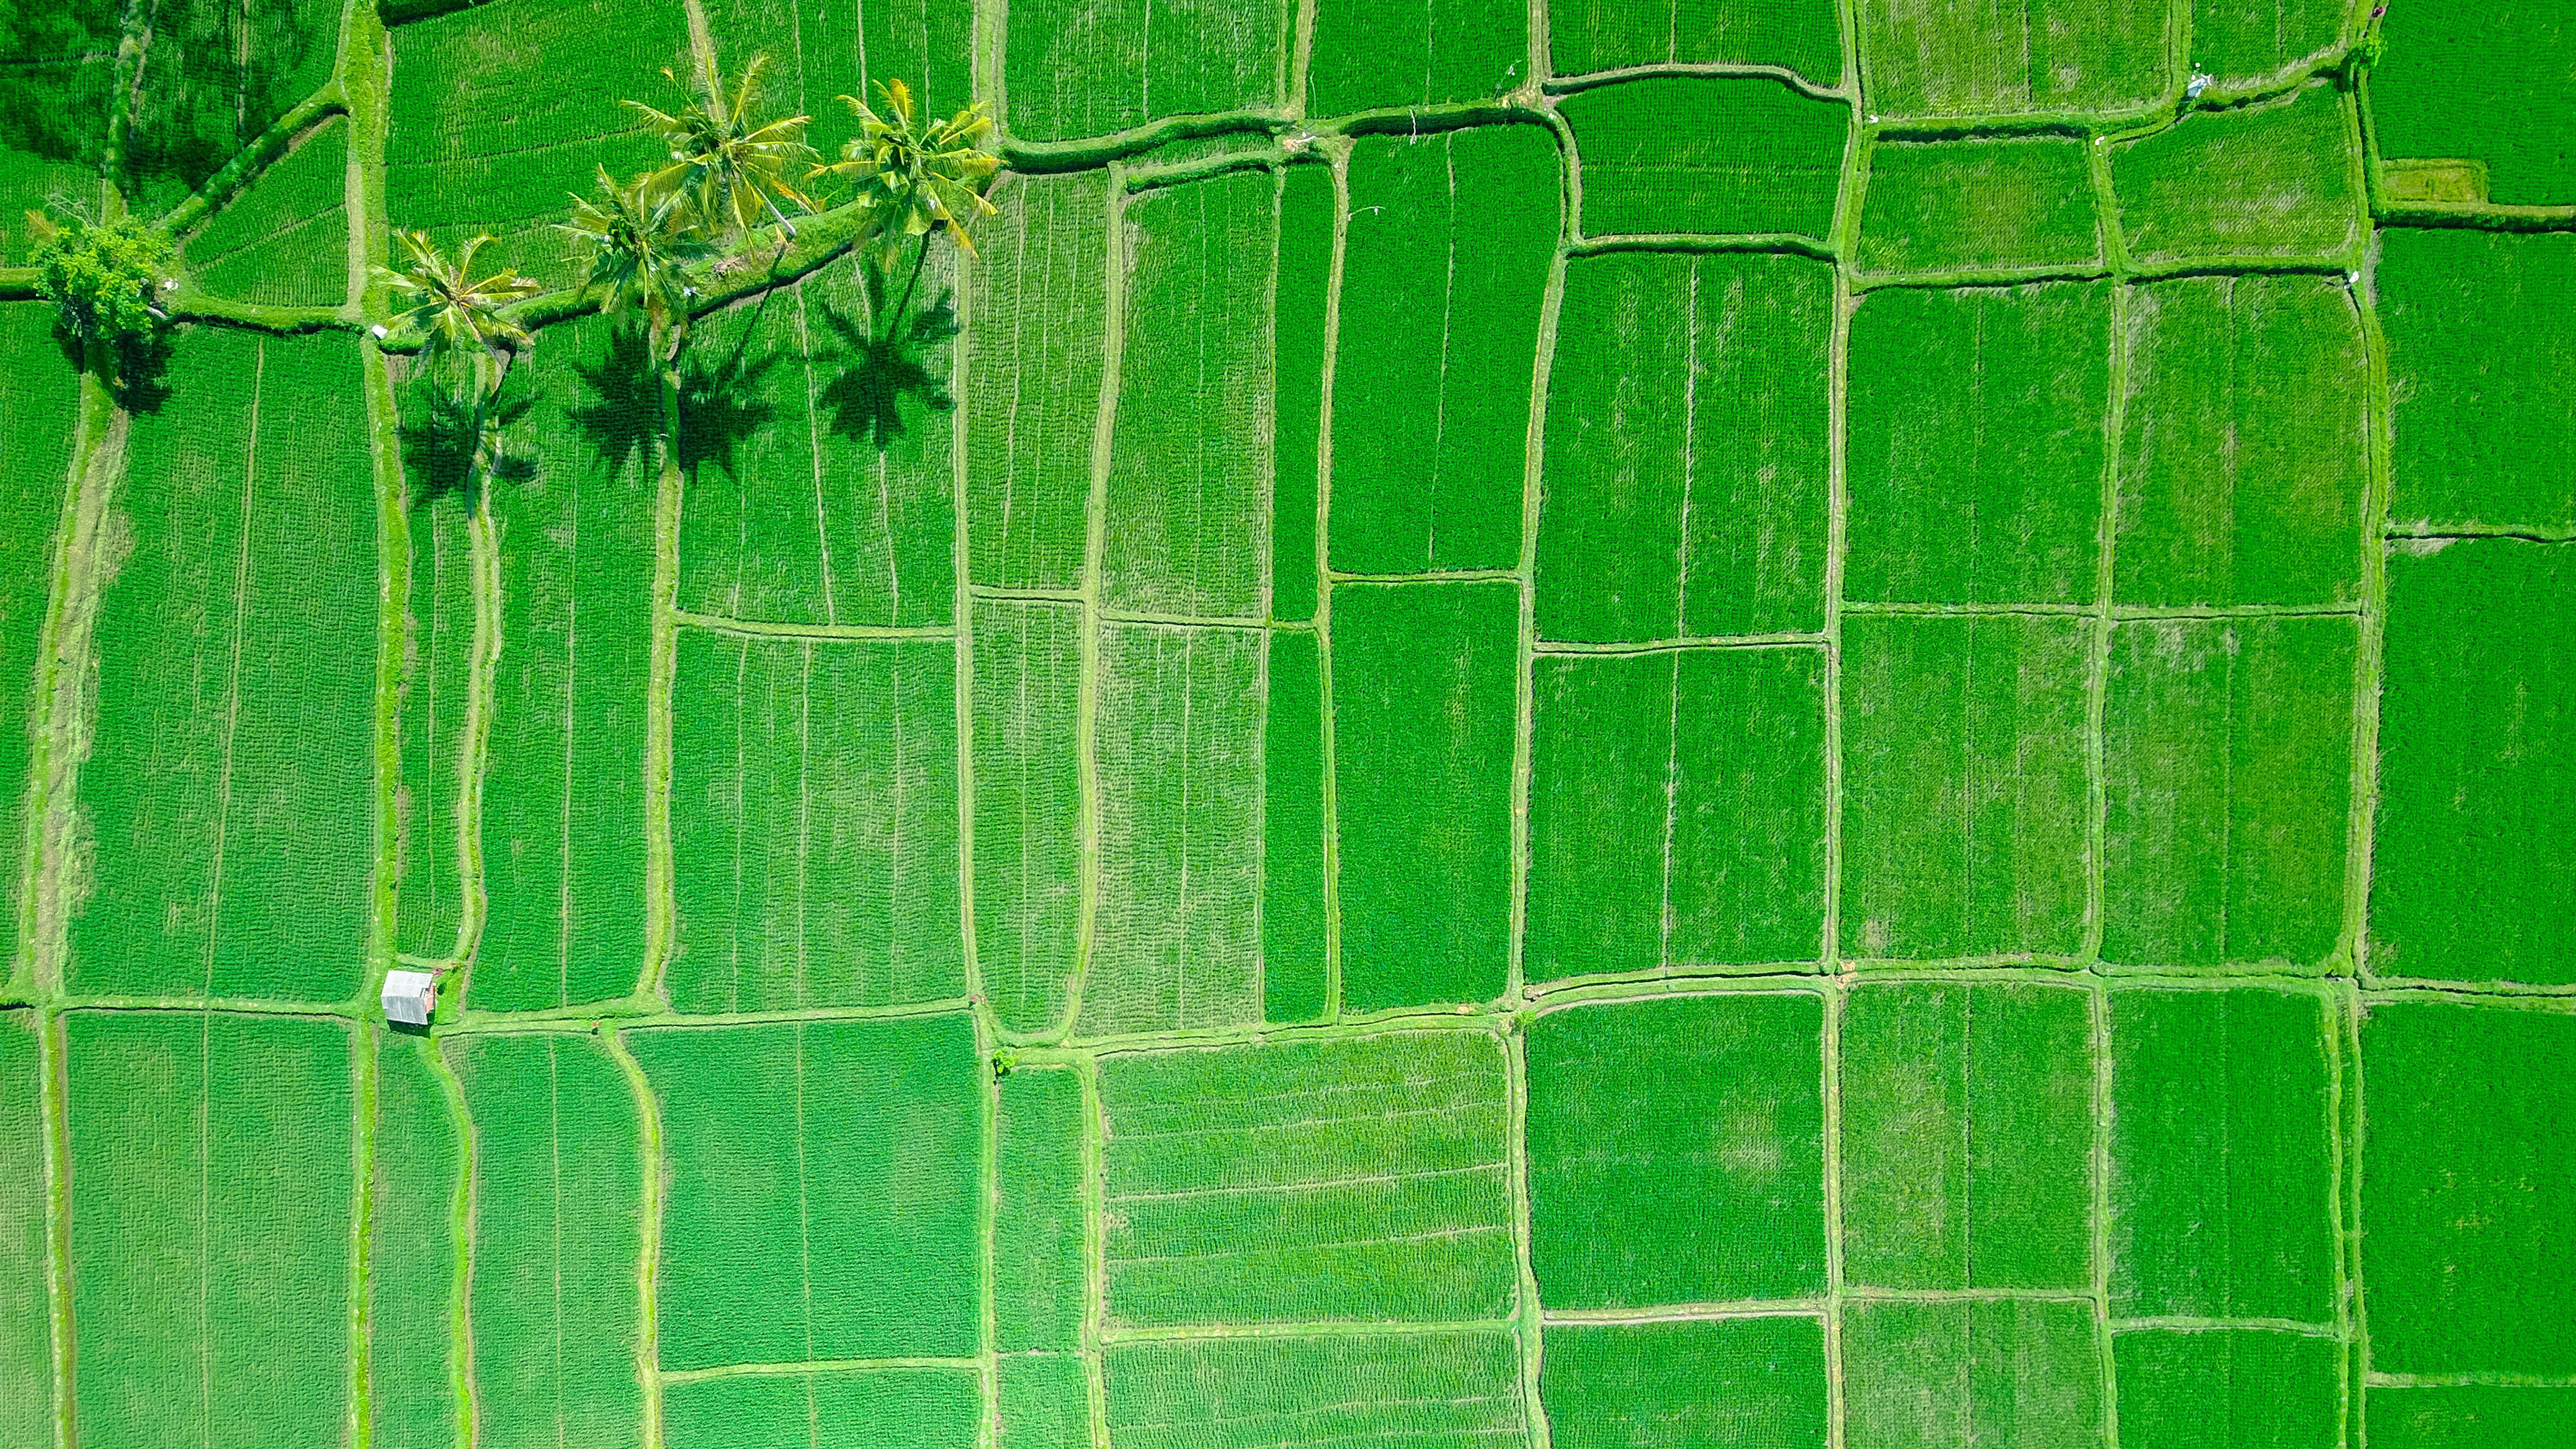 10 technologies that could combat climate change as food demand soars